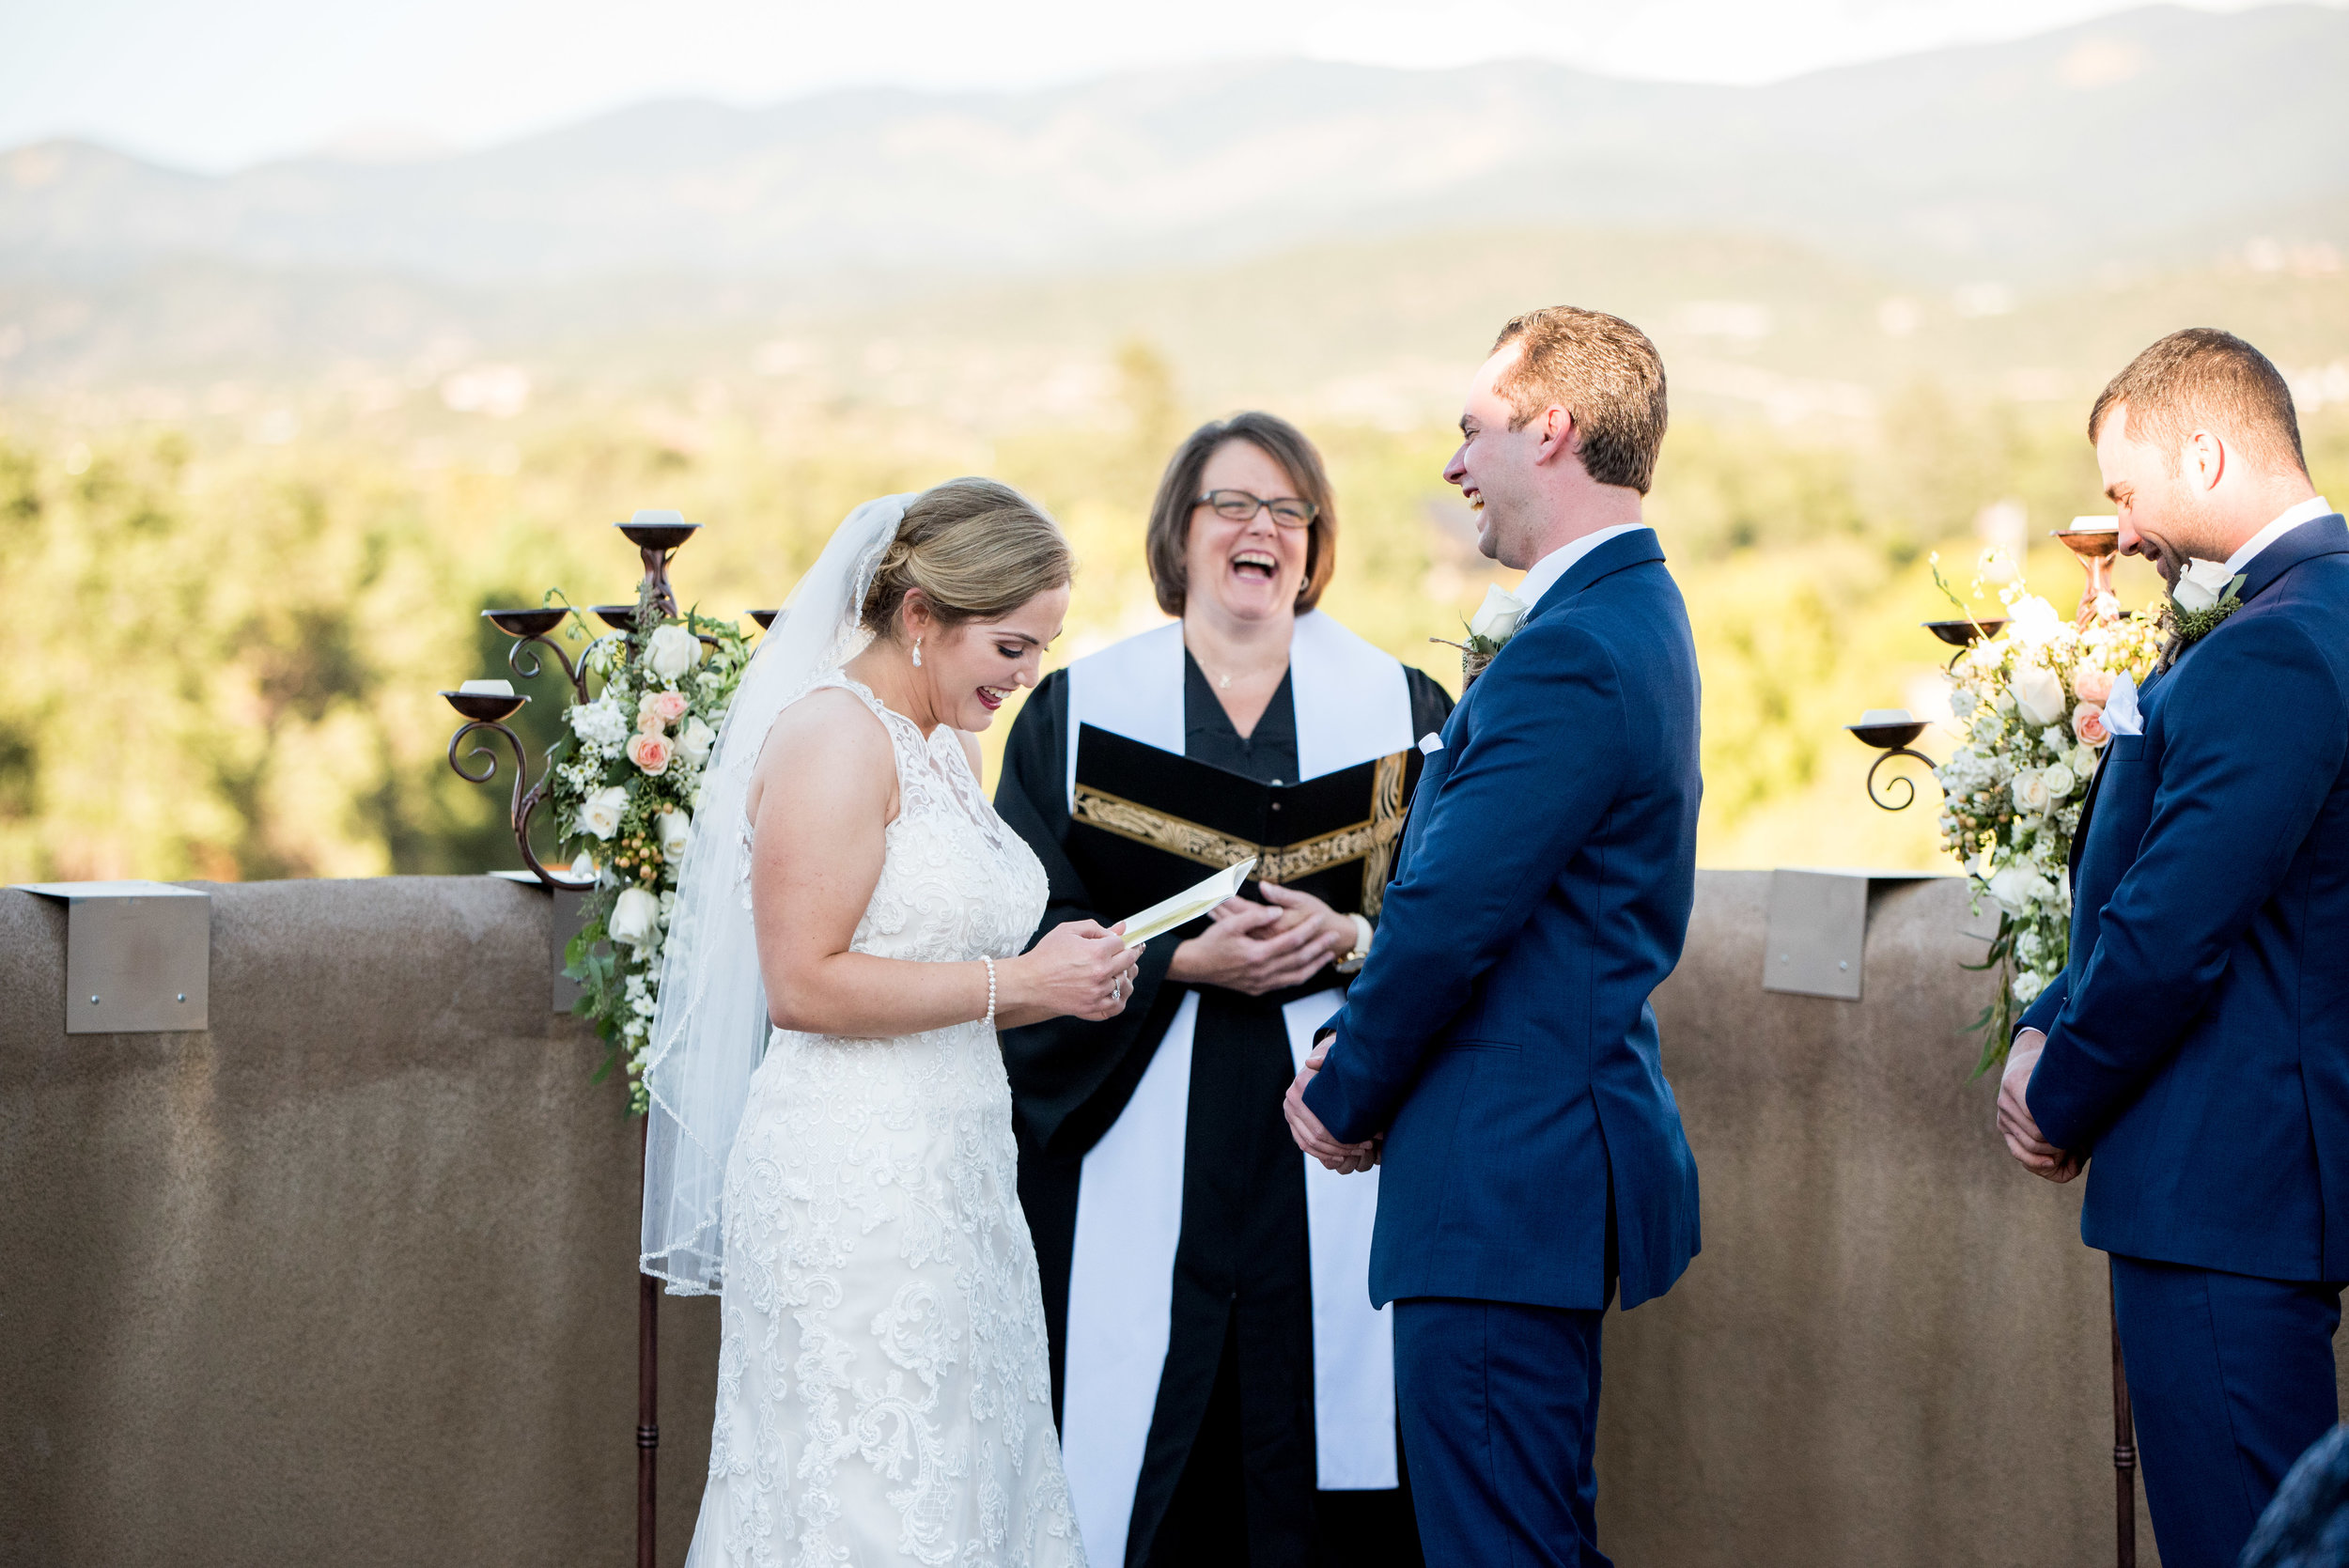 Wedding Photographers Santa Fe New Mexico